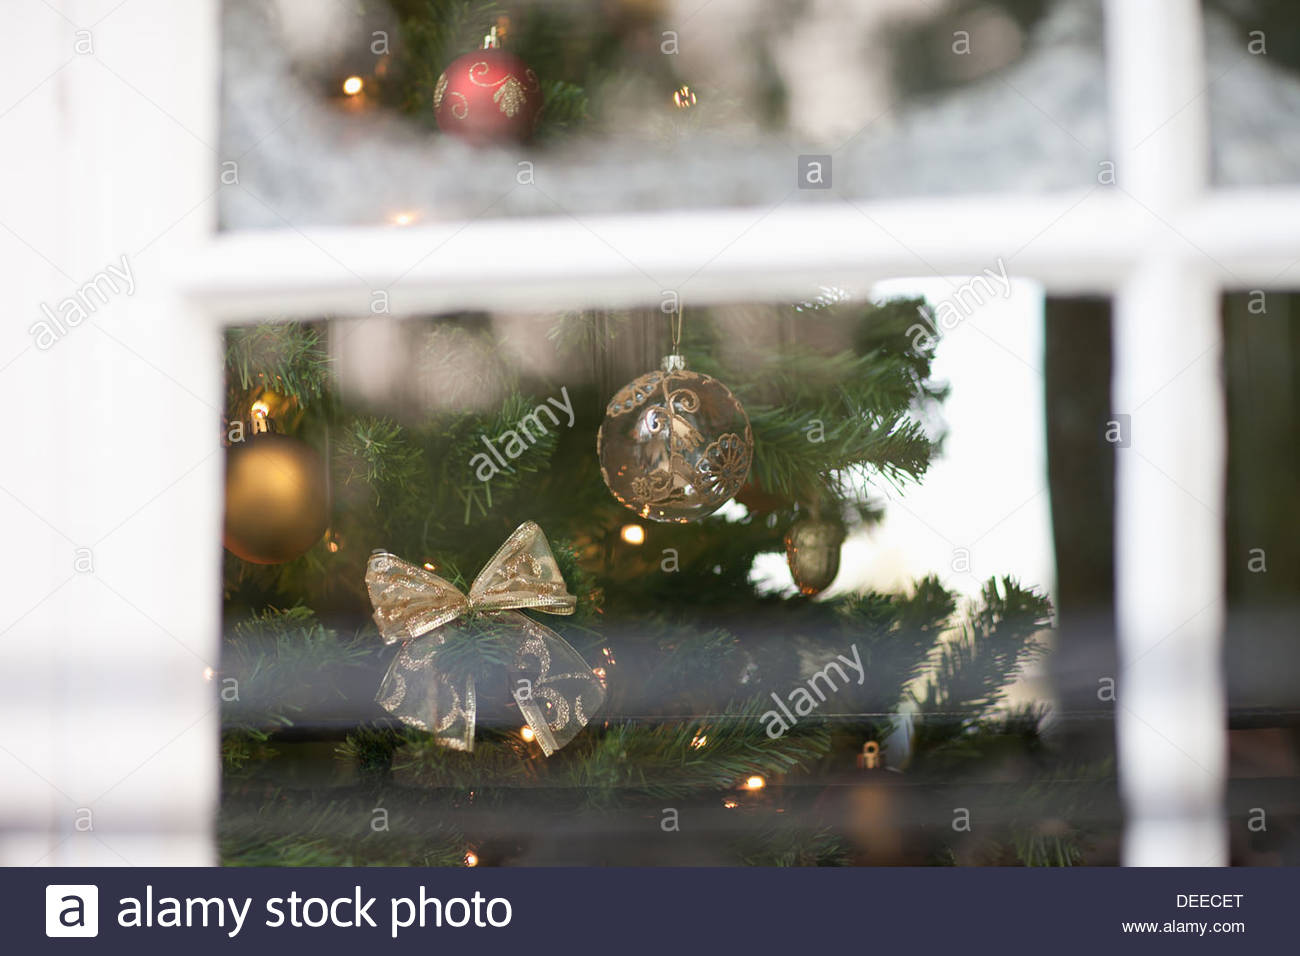 Christmas ornaments on tree behind window - Stock Image